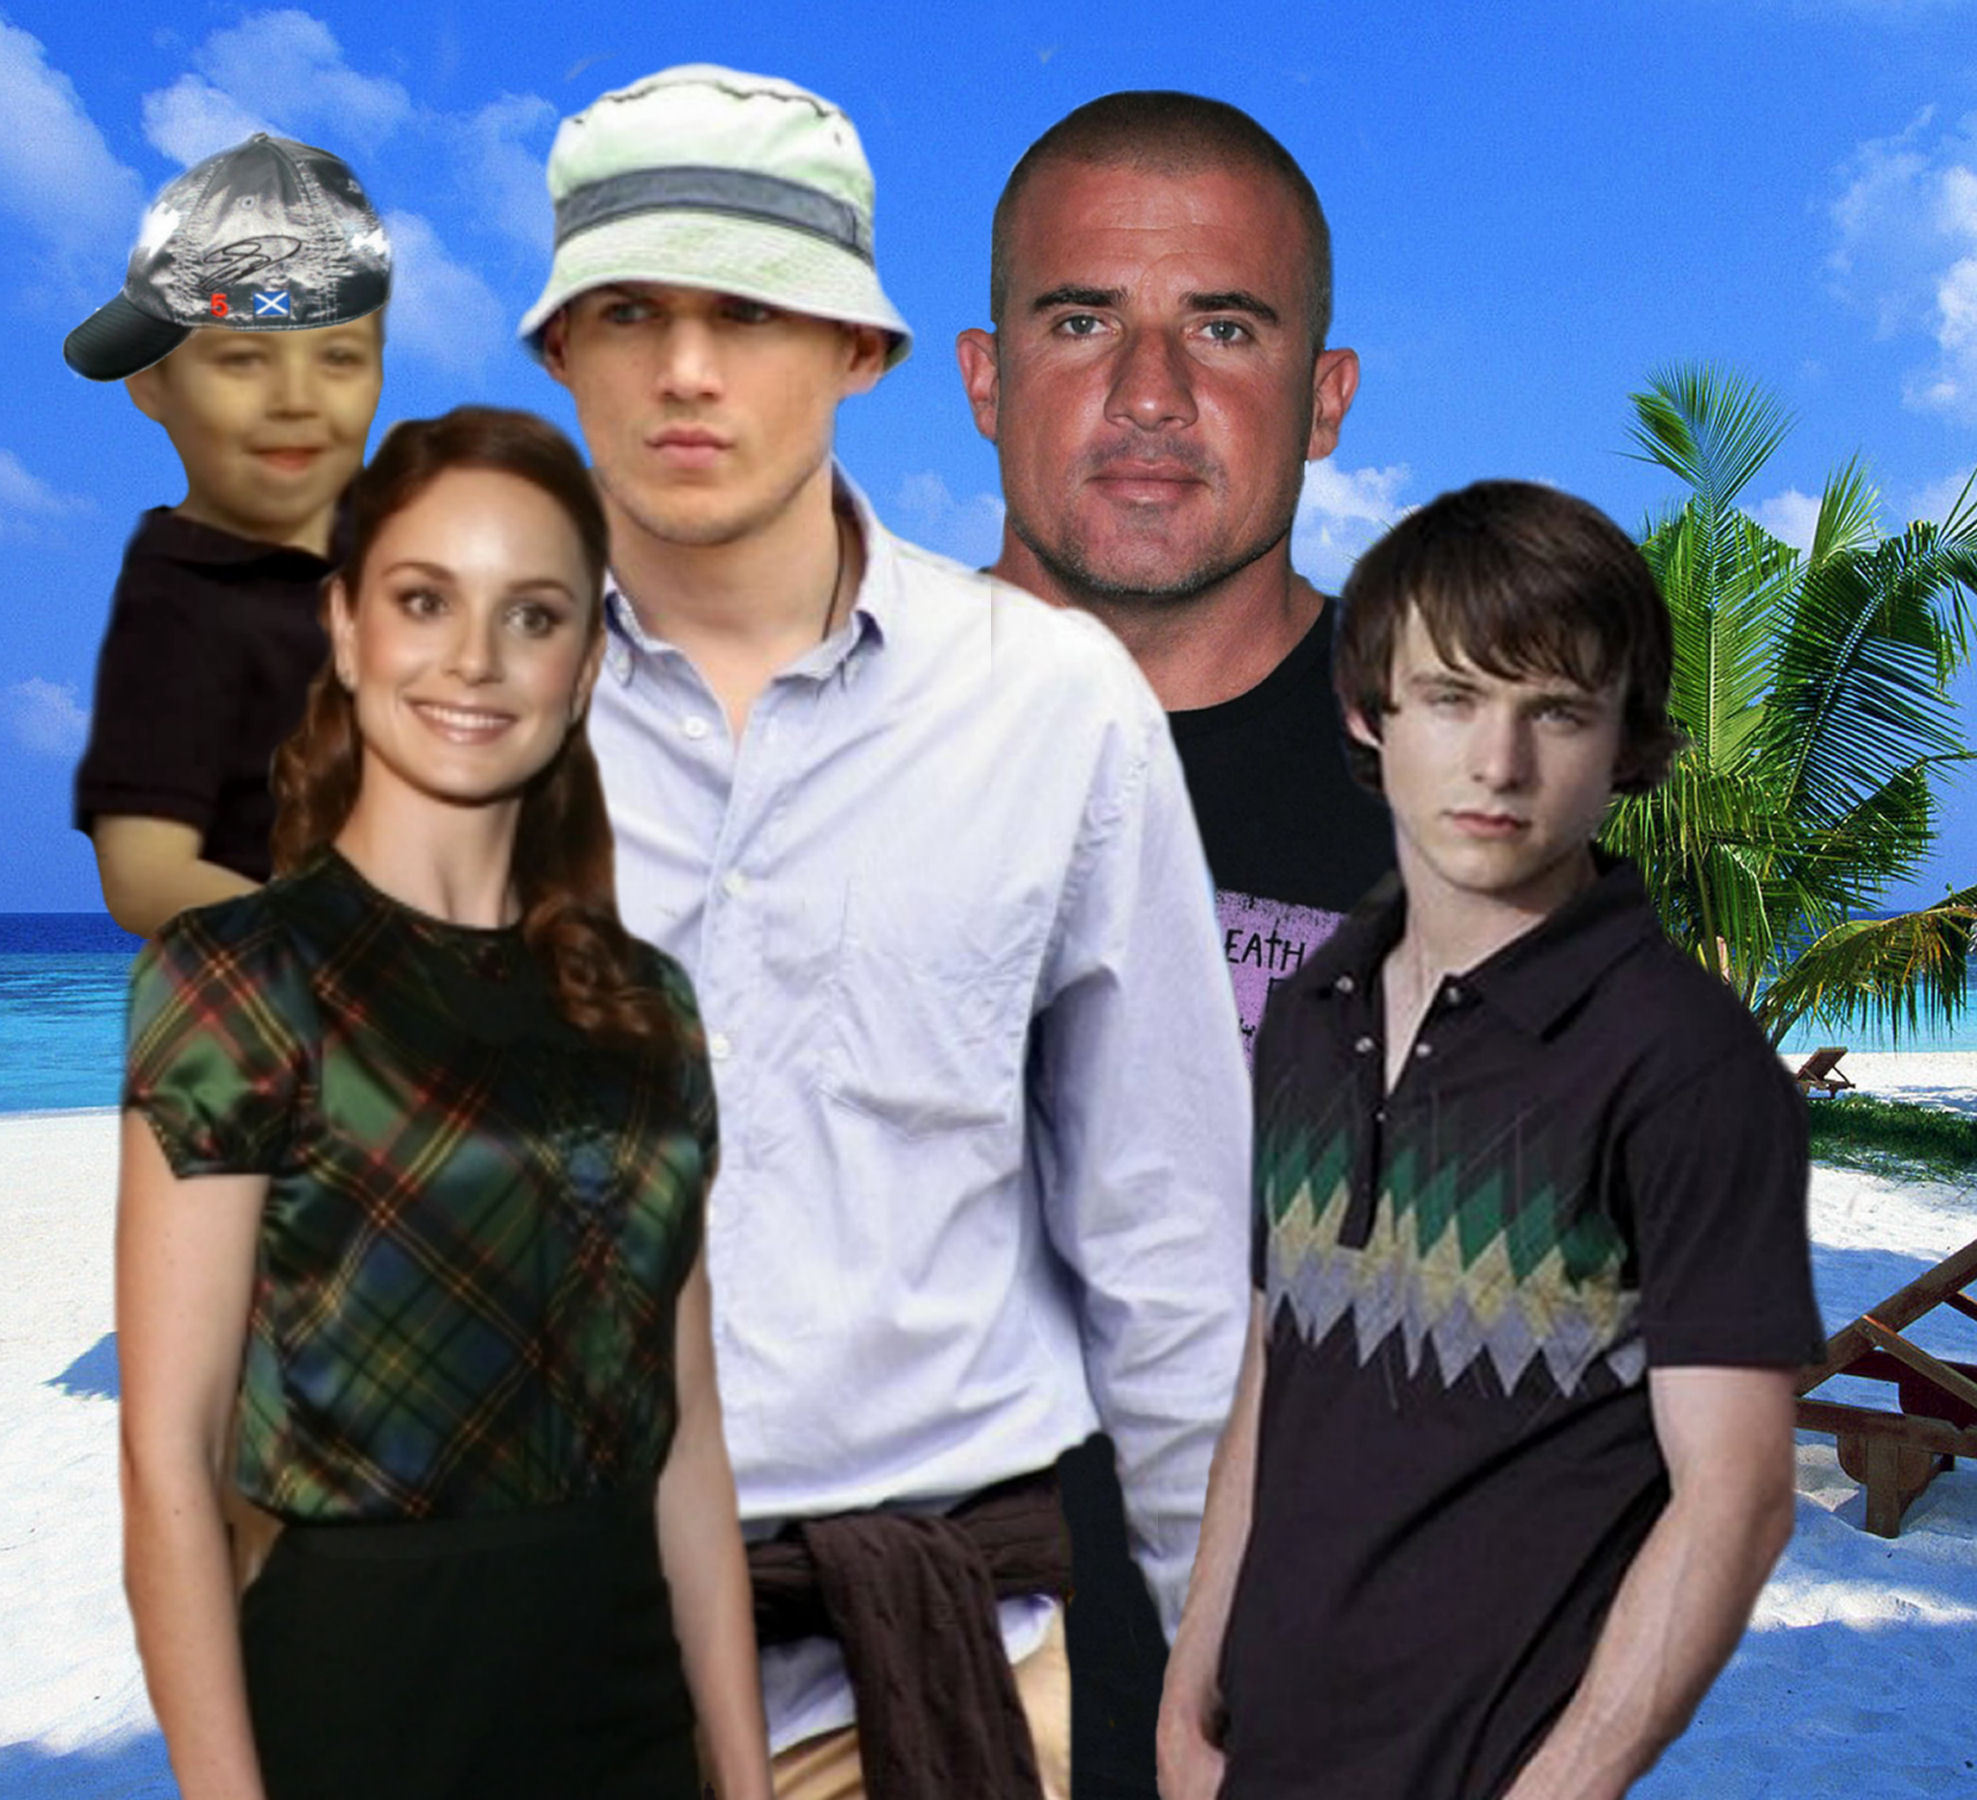 Family Scofield and Family Burrows